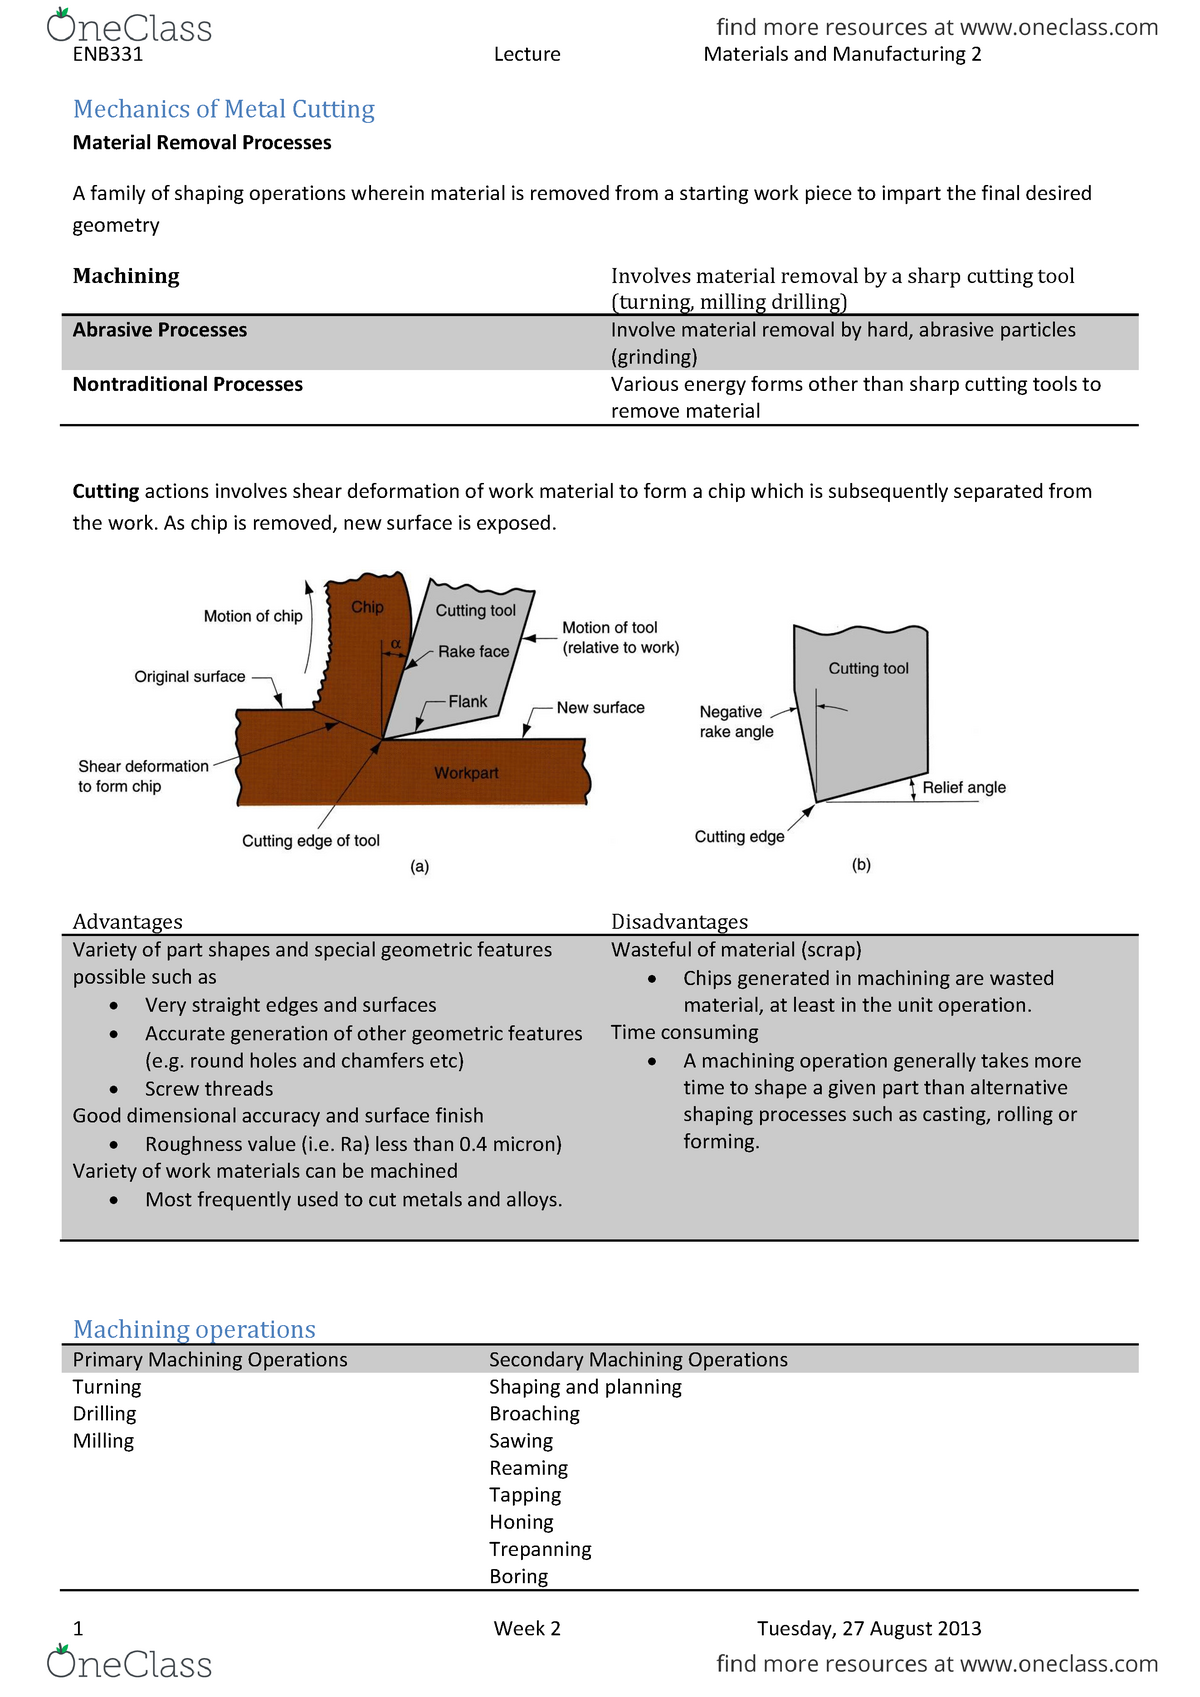 Materials and Manufacturing 2 Lecture Notes Week 2 5 - QUT